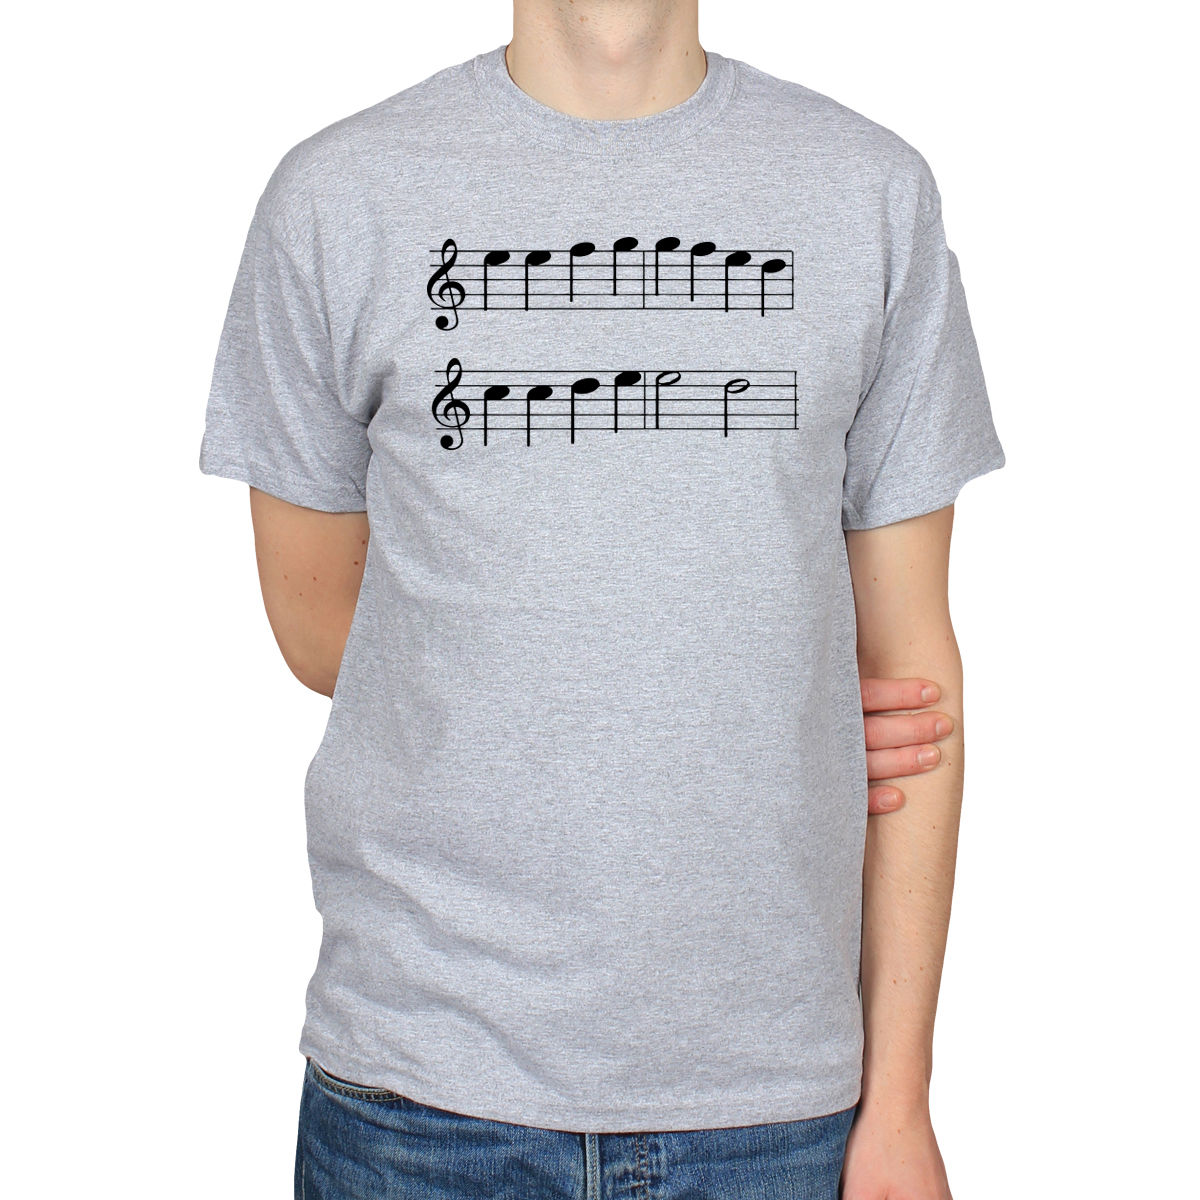 ODE TO JOY LUDWIG VAN BEETHOVEN CLASSICAL MUSIC MUSICAL NOTES MENS T-SHIRT  TEE Men S 8875cb6a9d30